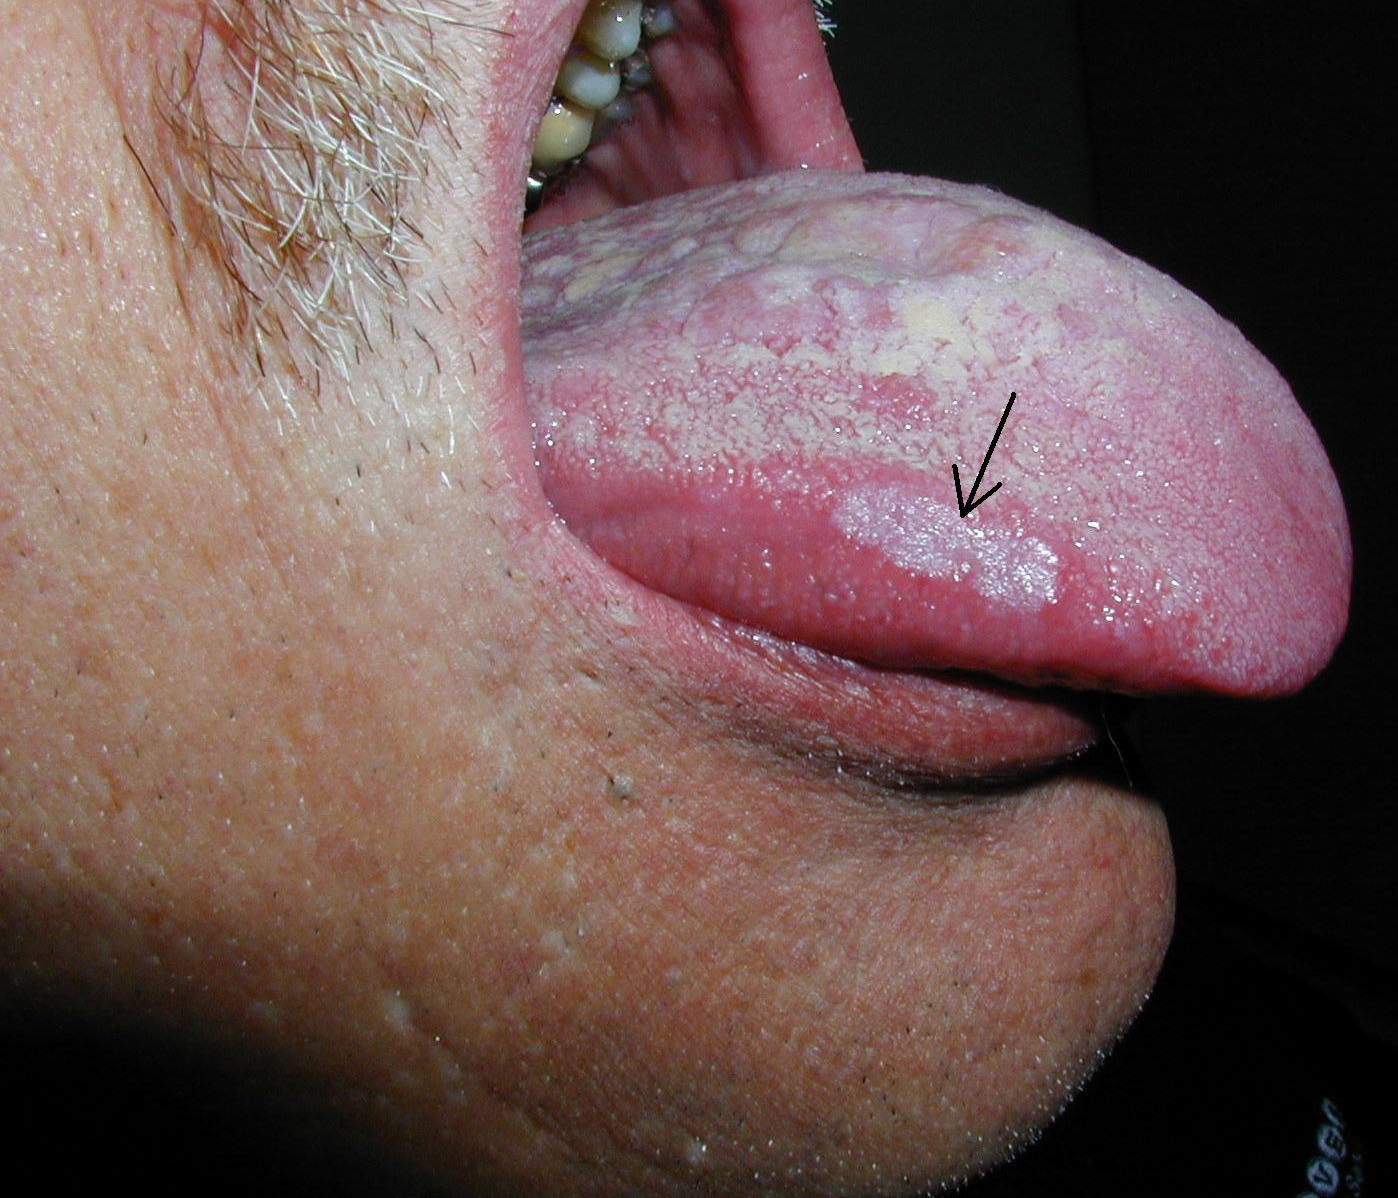 White Spots on Mouth Mucosa